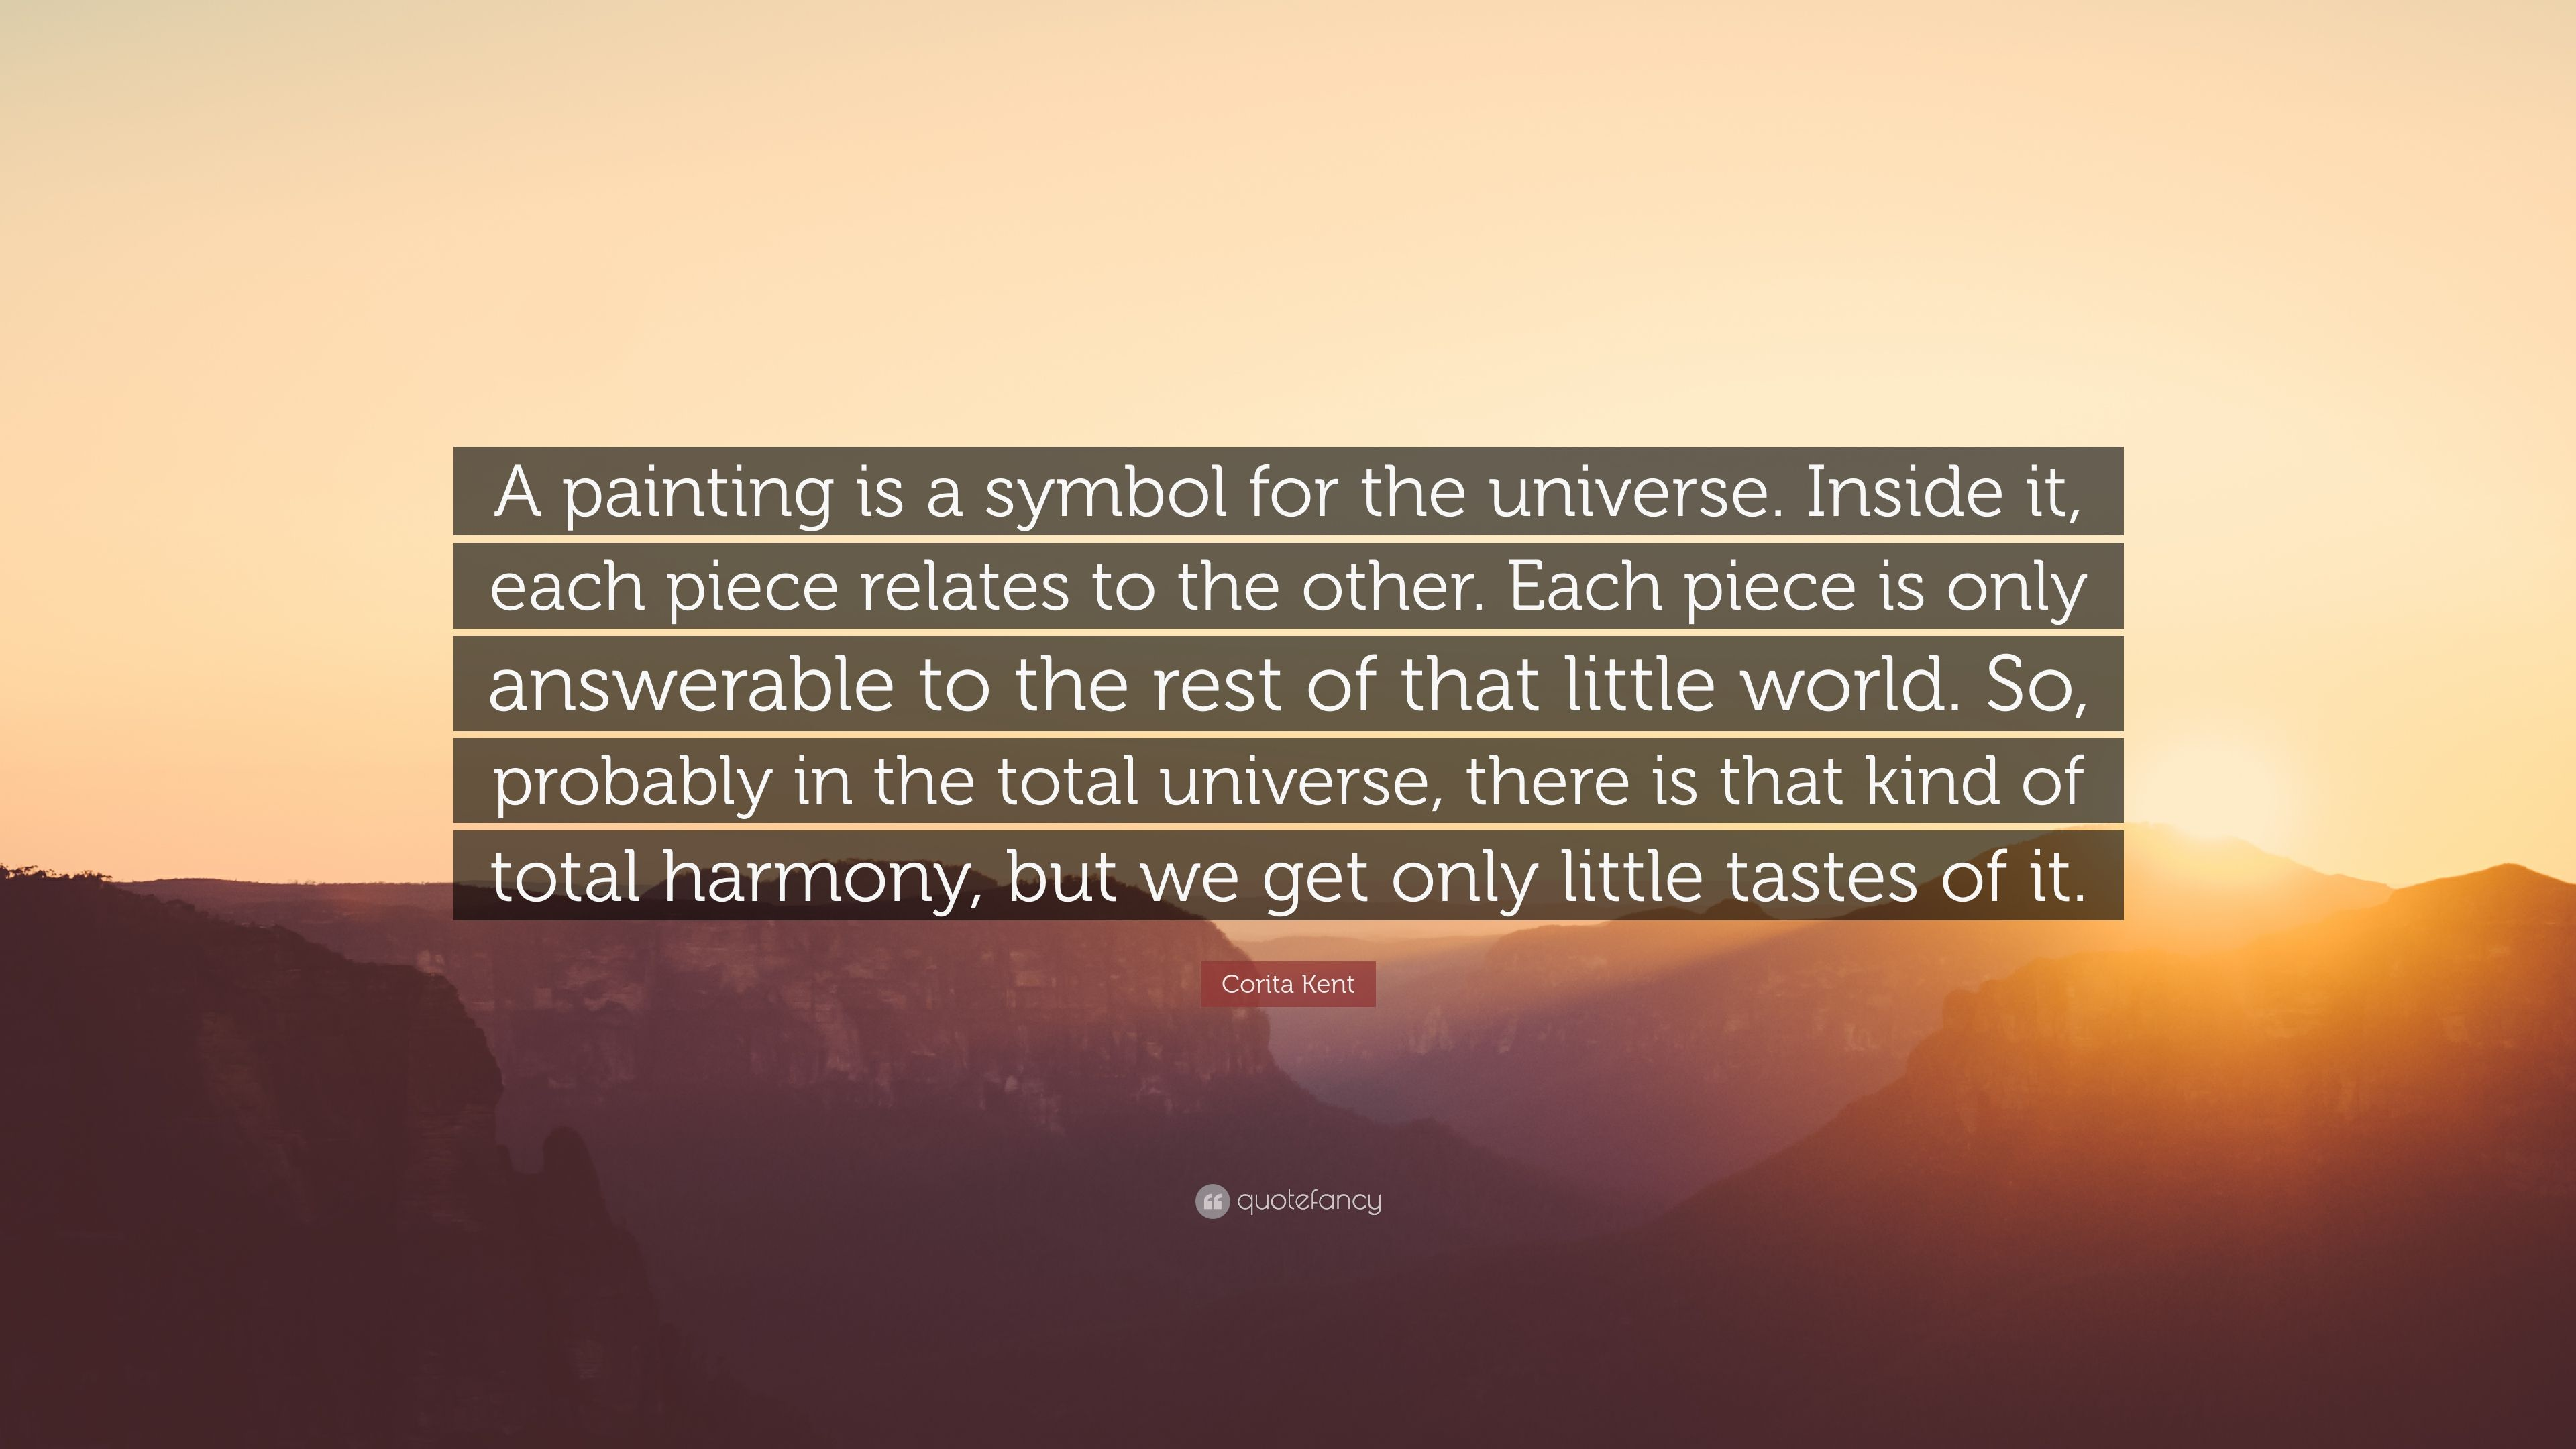 Corita kent quote a painting is a symbol for the universe corita kent quote a painting is a symbol for the universe inside it buycottarizona